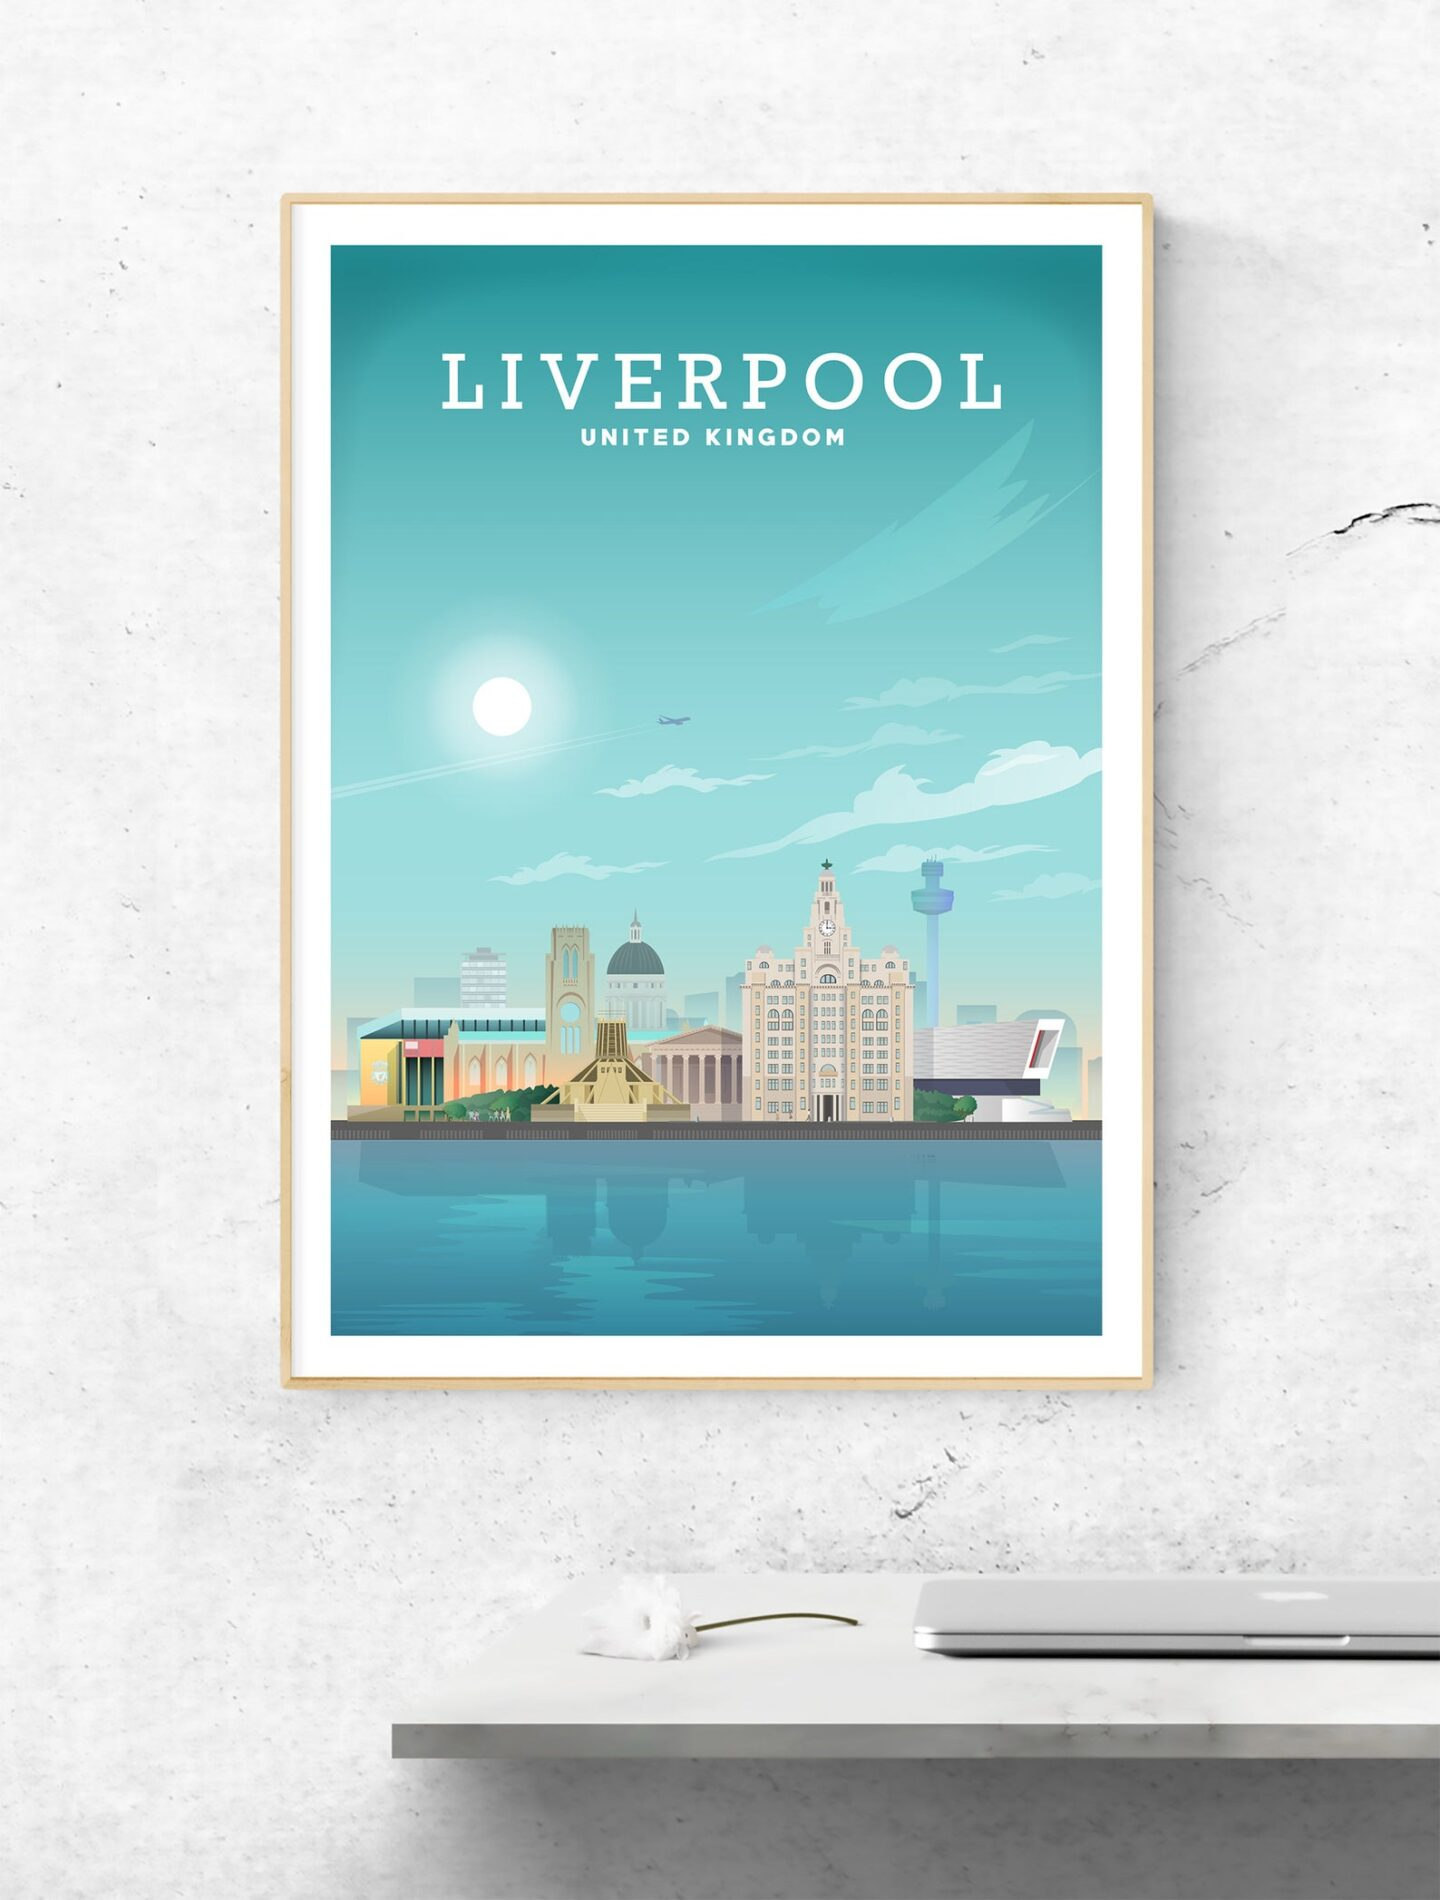 Liverpool art print showing Liverpool skyline against a blue sky and blue river Mersey. Liverpool, United Kingdom is written in white at the top of the print.